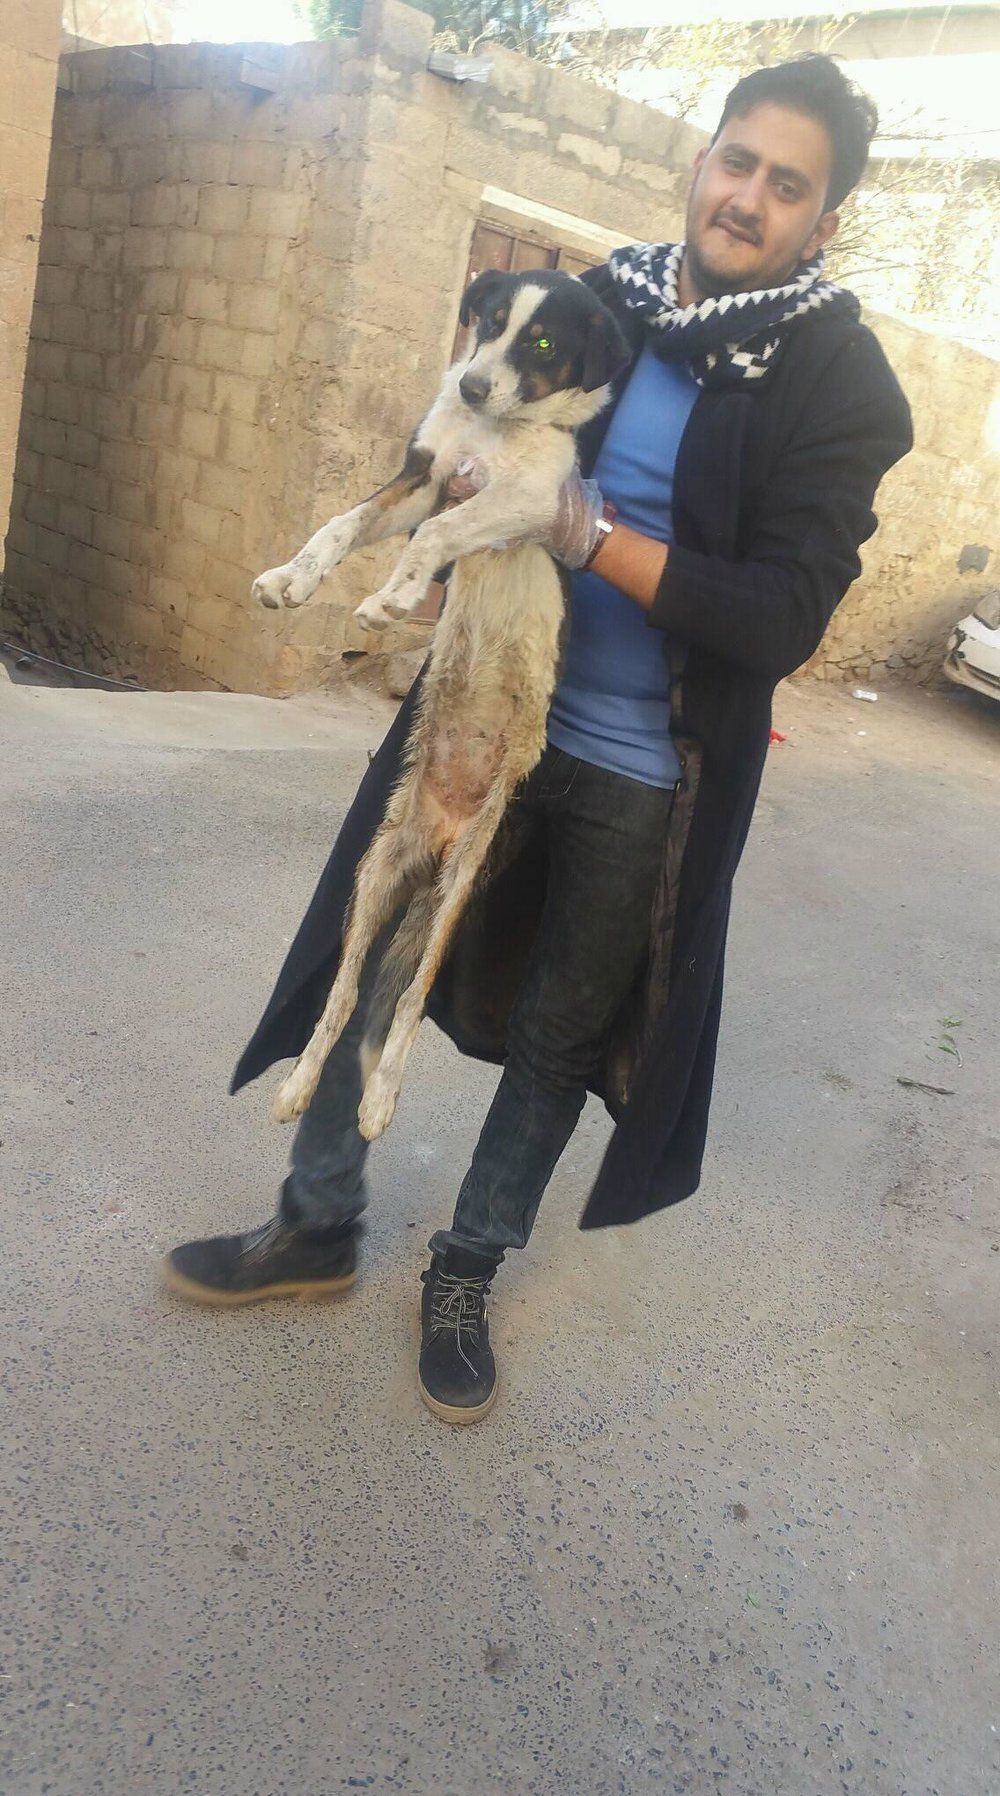 LUCY with Mohamed Qaten 26 DEC 2018 OWAP AR stray rescue mission sana'a yemen.jpg